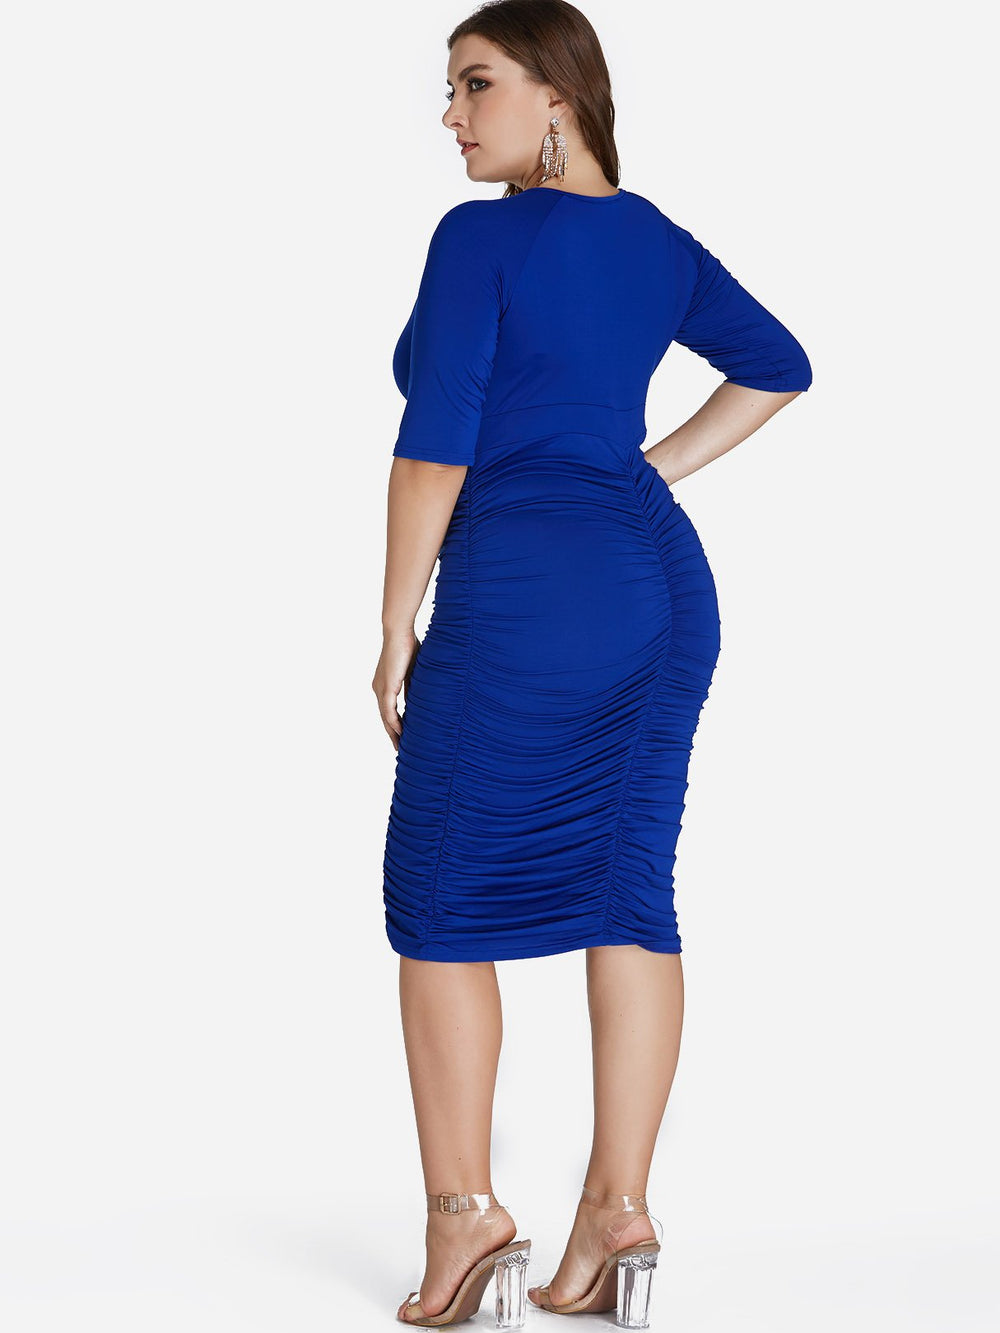 Womens Blue Plus Size Dresses